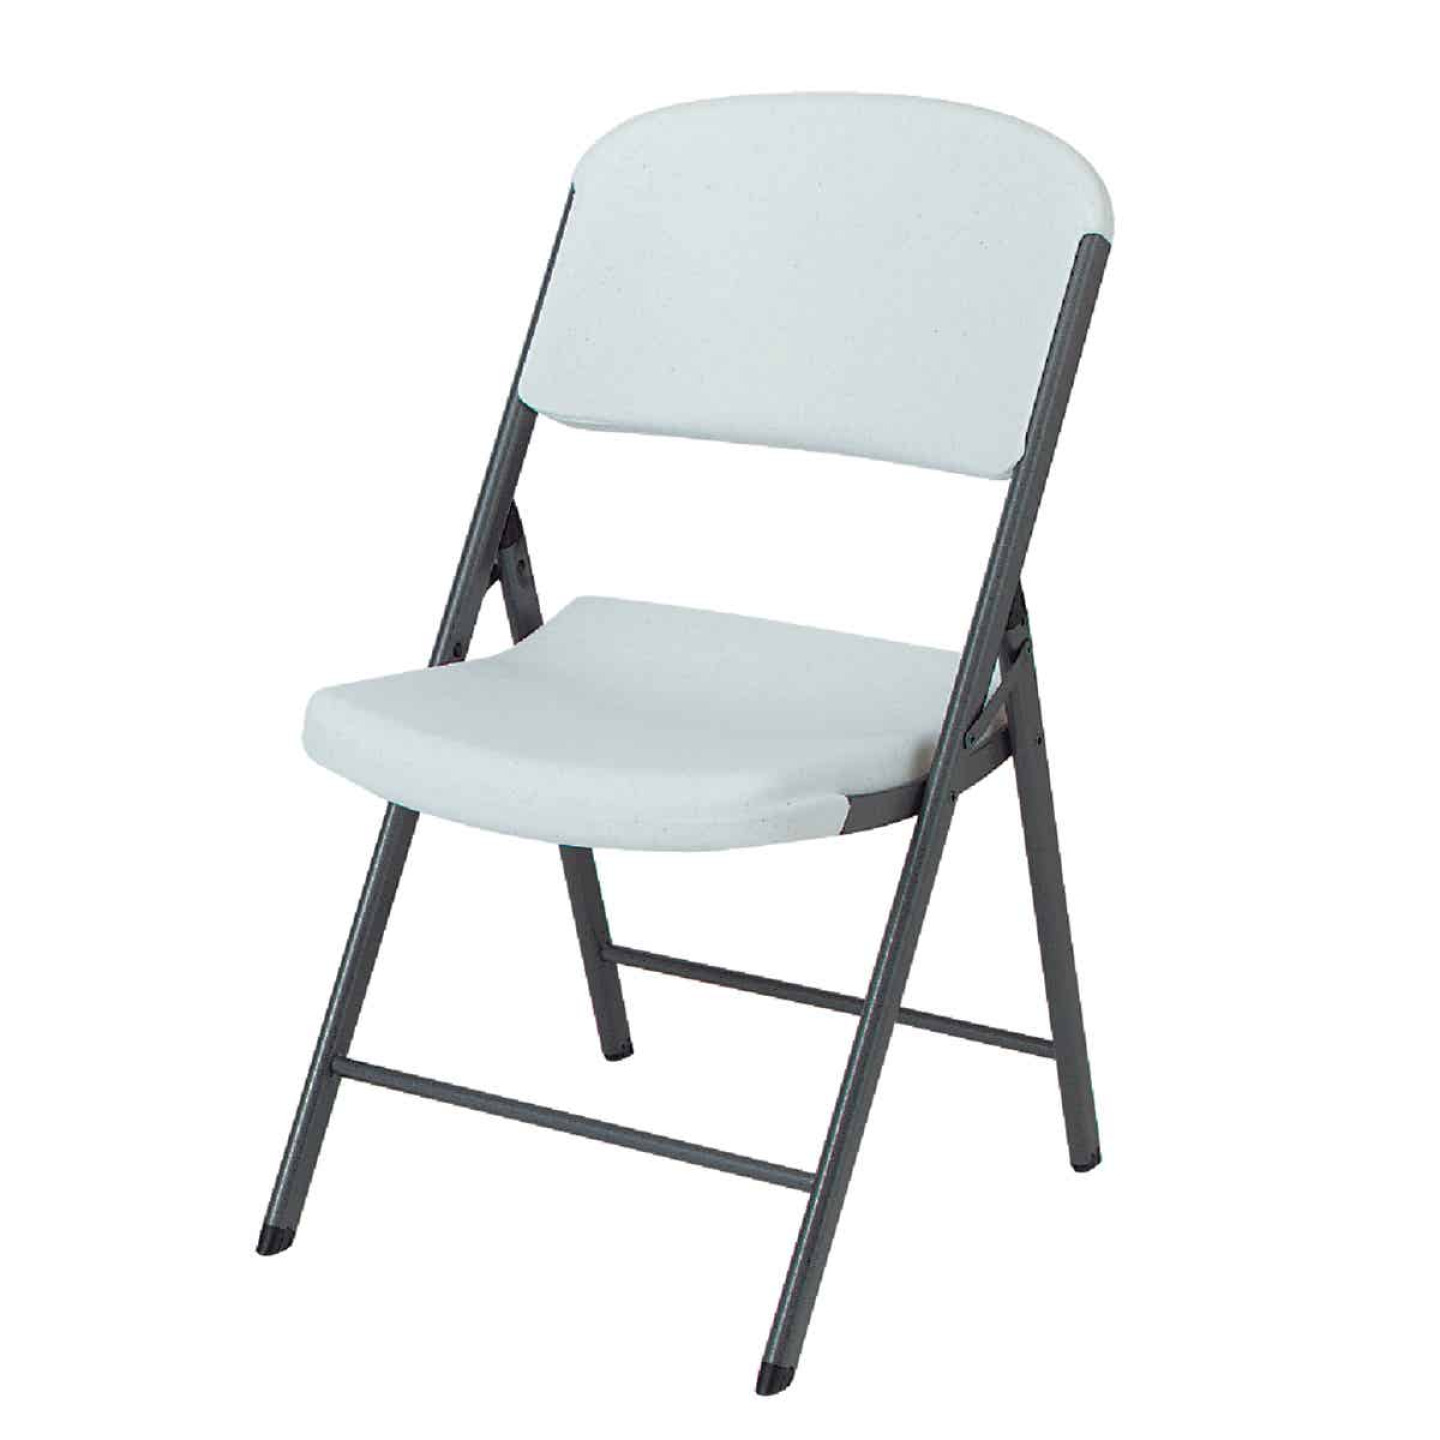 Lifetime Contoured Folding Chair, White Image 1